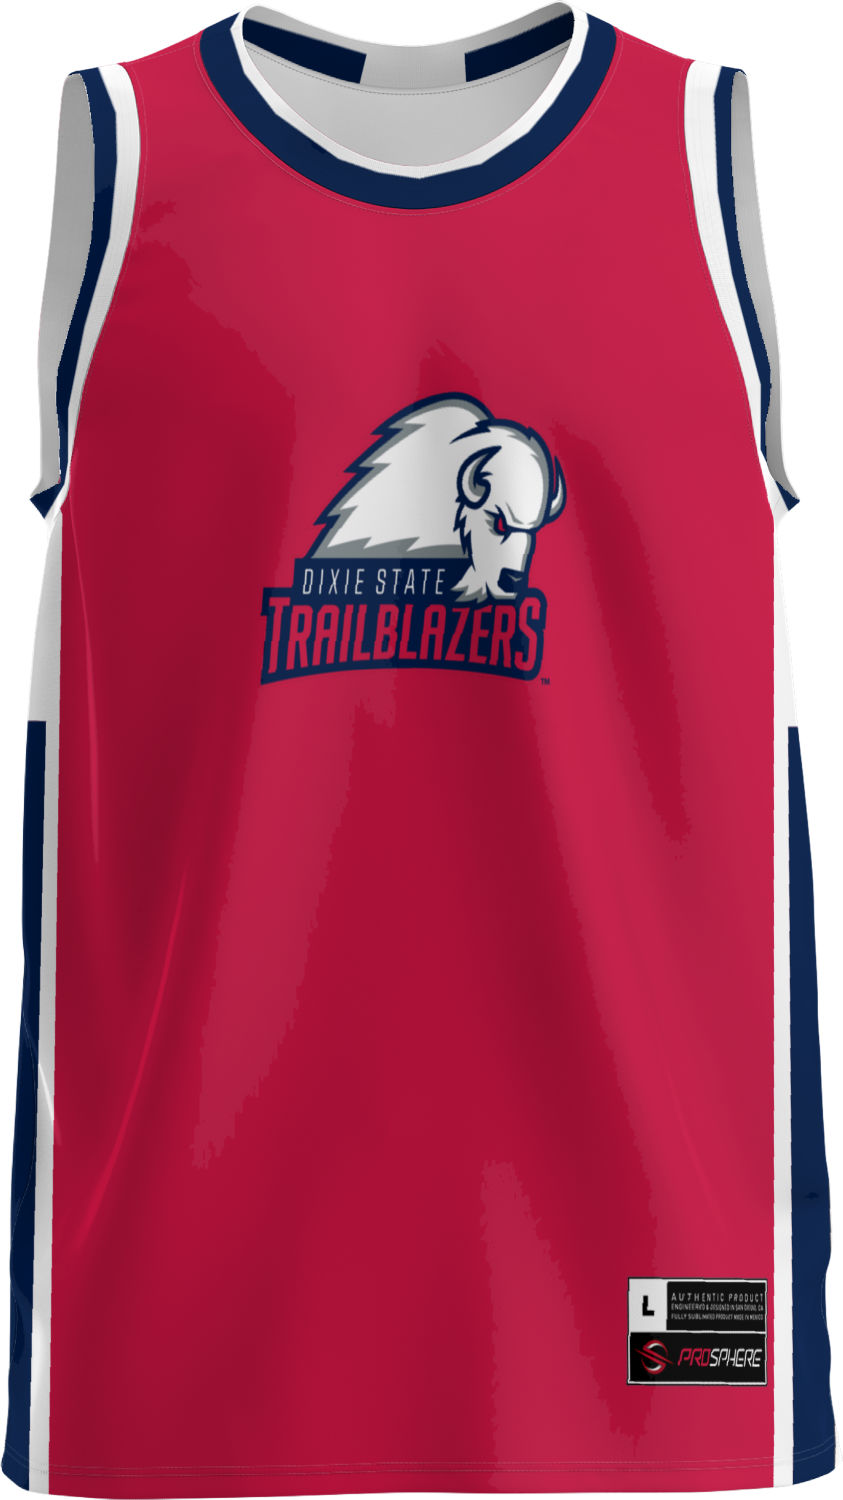 Dixie State University: Youth Replica Basketball Fan Jersey - Modern